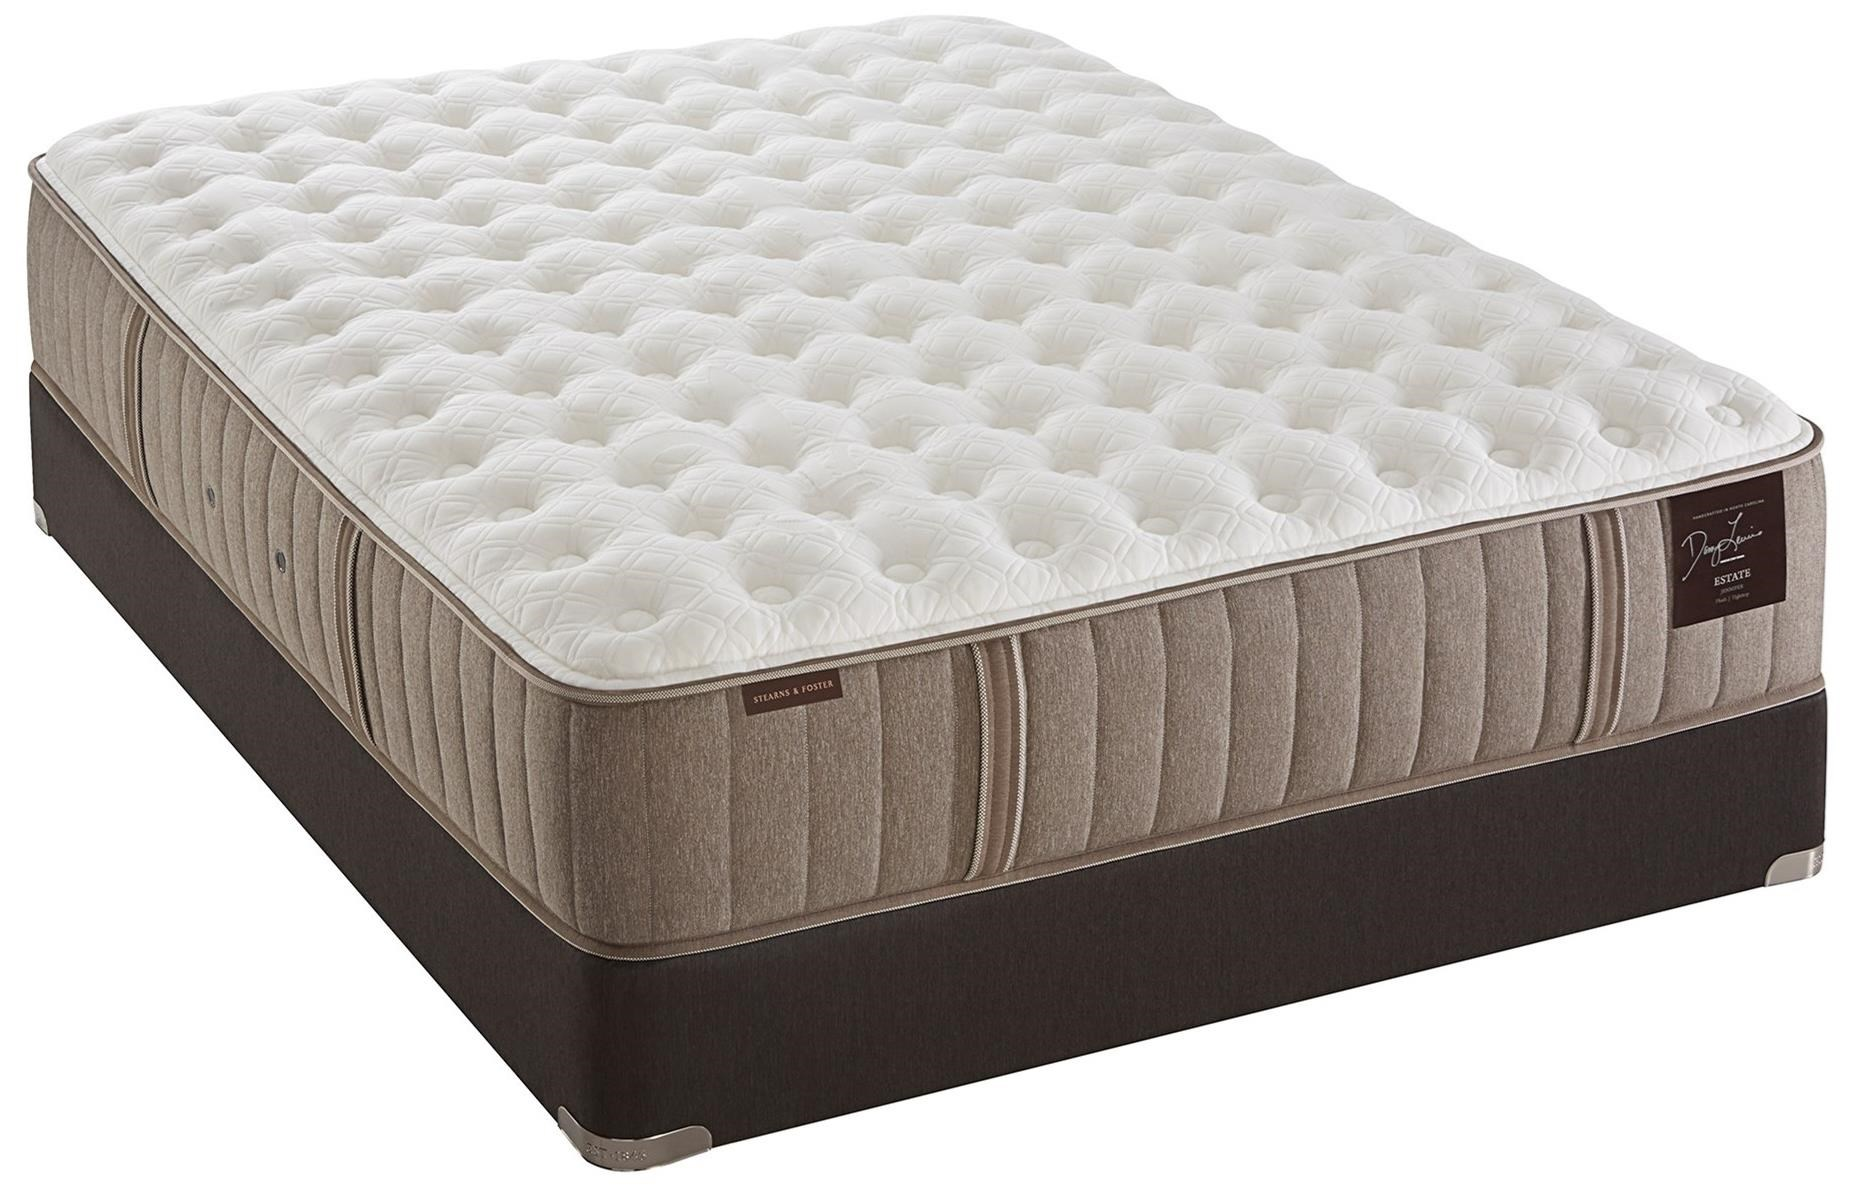 Stearns & Foster Oak Terrace Luxury Plush King Plush Tight Top Mattress Set - Item Number: Plush-K+2x609375TXL